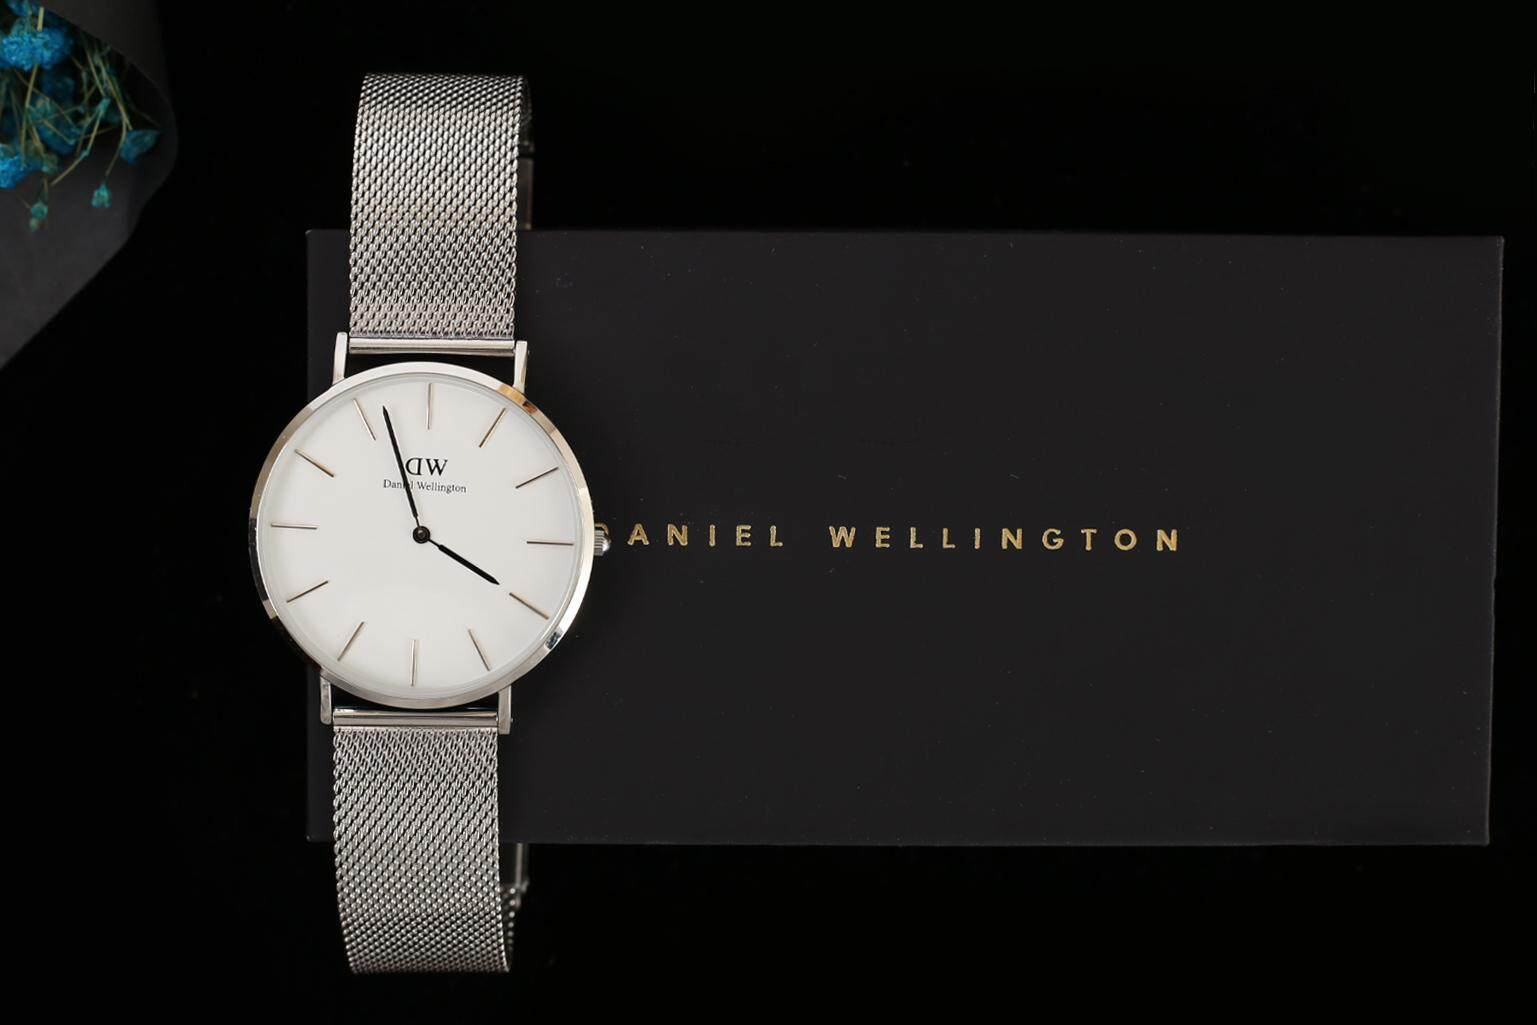 100% Genuine Product Waterproof Daniel Wellington Watch Women's U.S Fashionable Watch Fashion Tide Steel Band